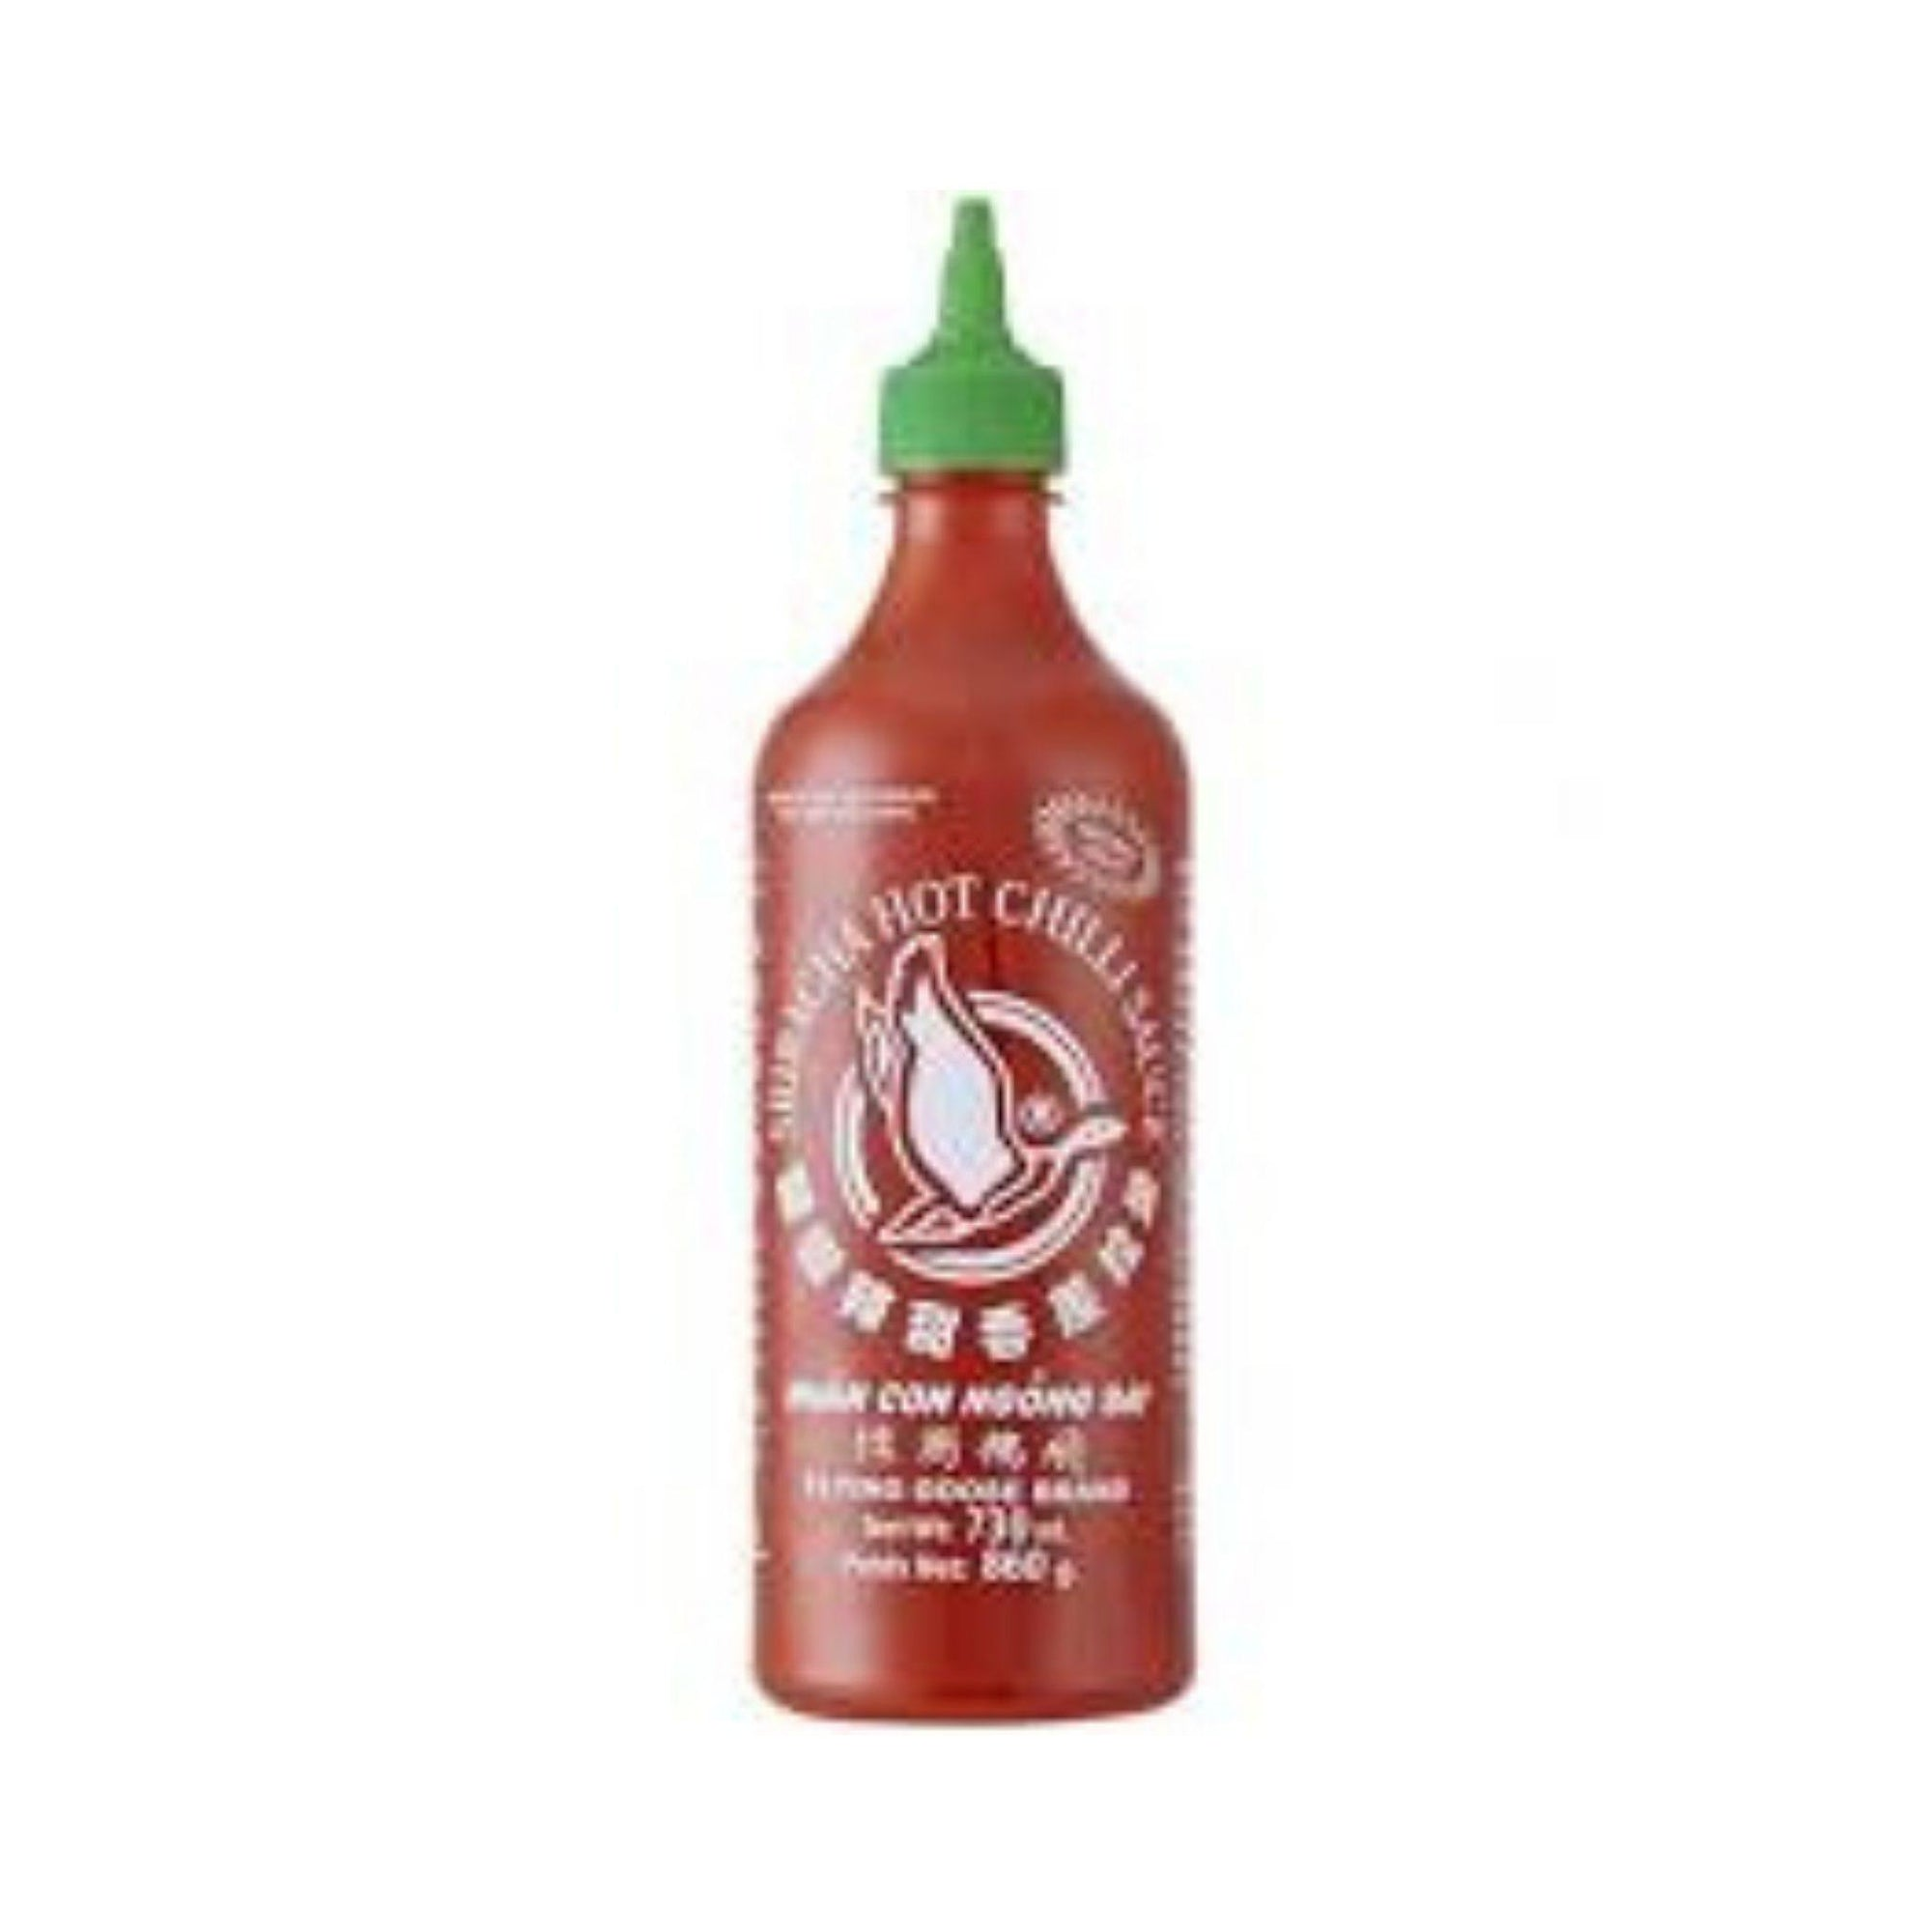 Sriracha Thai Hot Chilli Sriracha Sauce 455ml - Asian Harvest